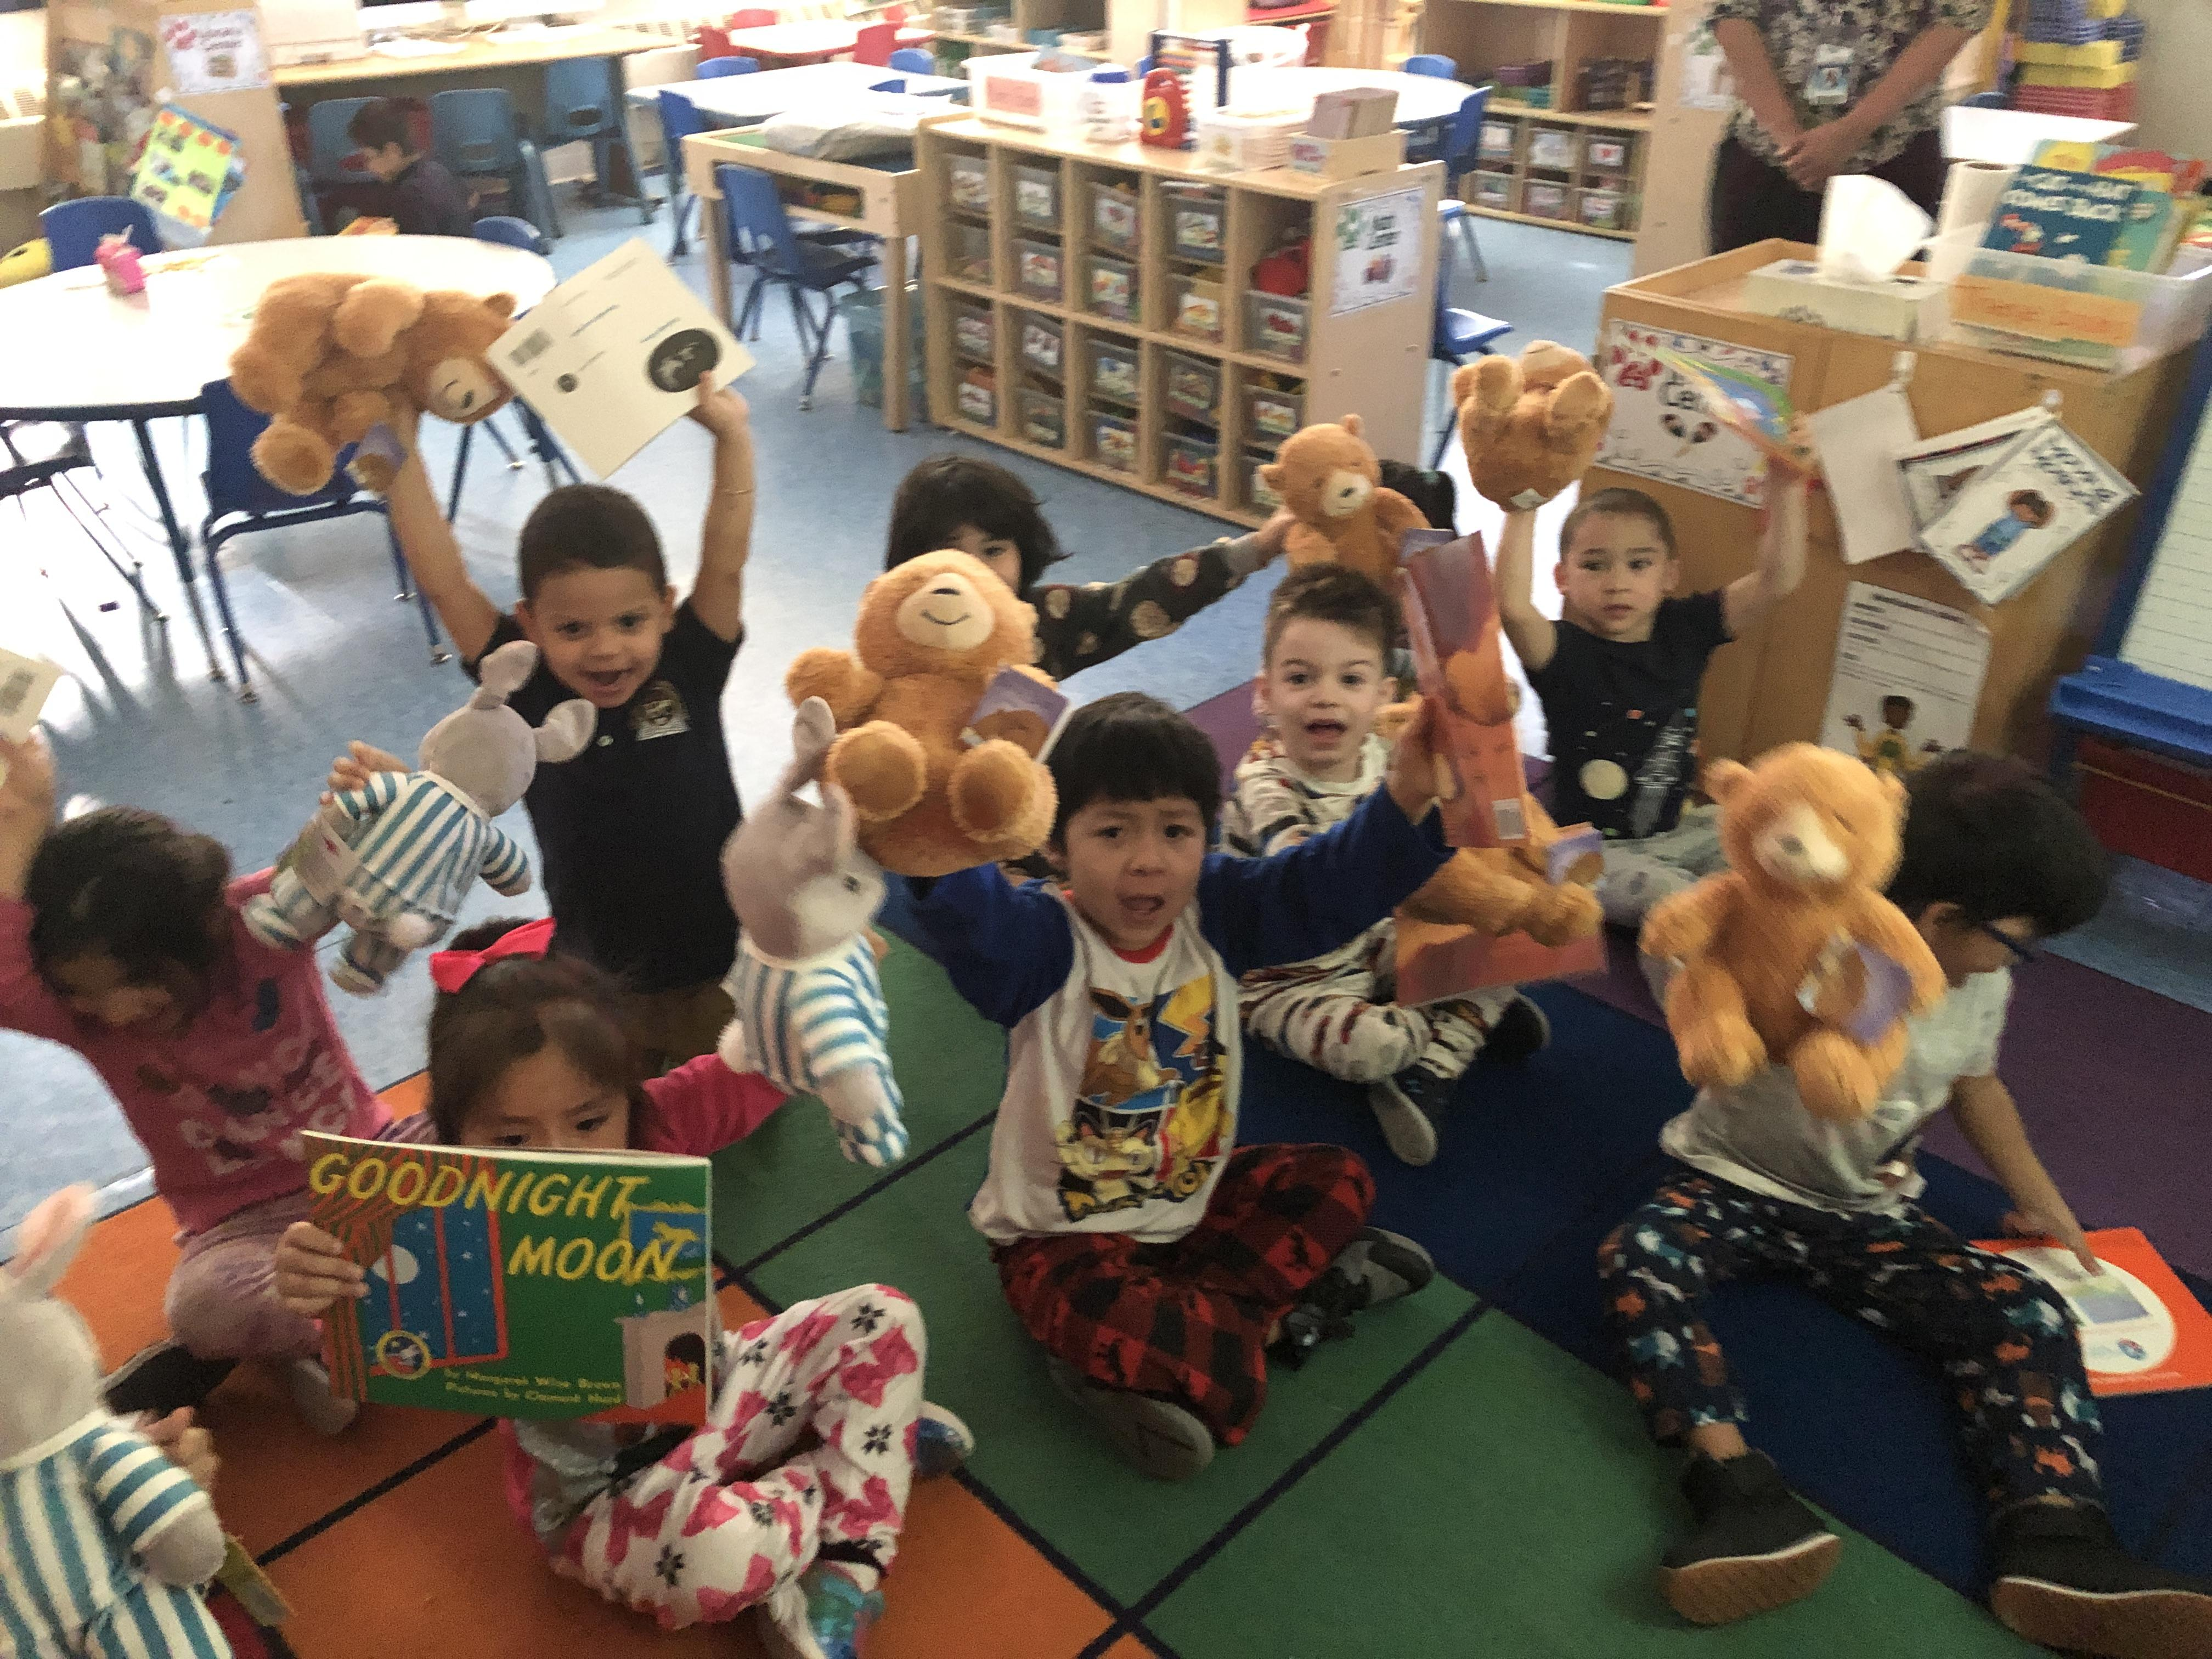 kids wearing pj's sitting on the class rug happily holding up their books and stuffed animals friends